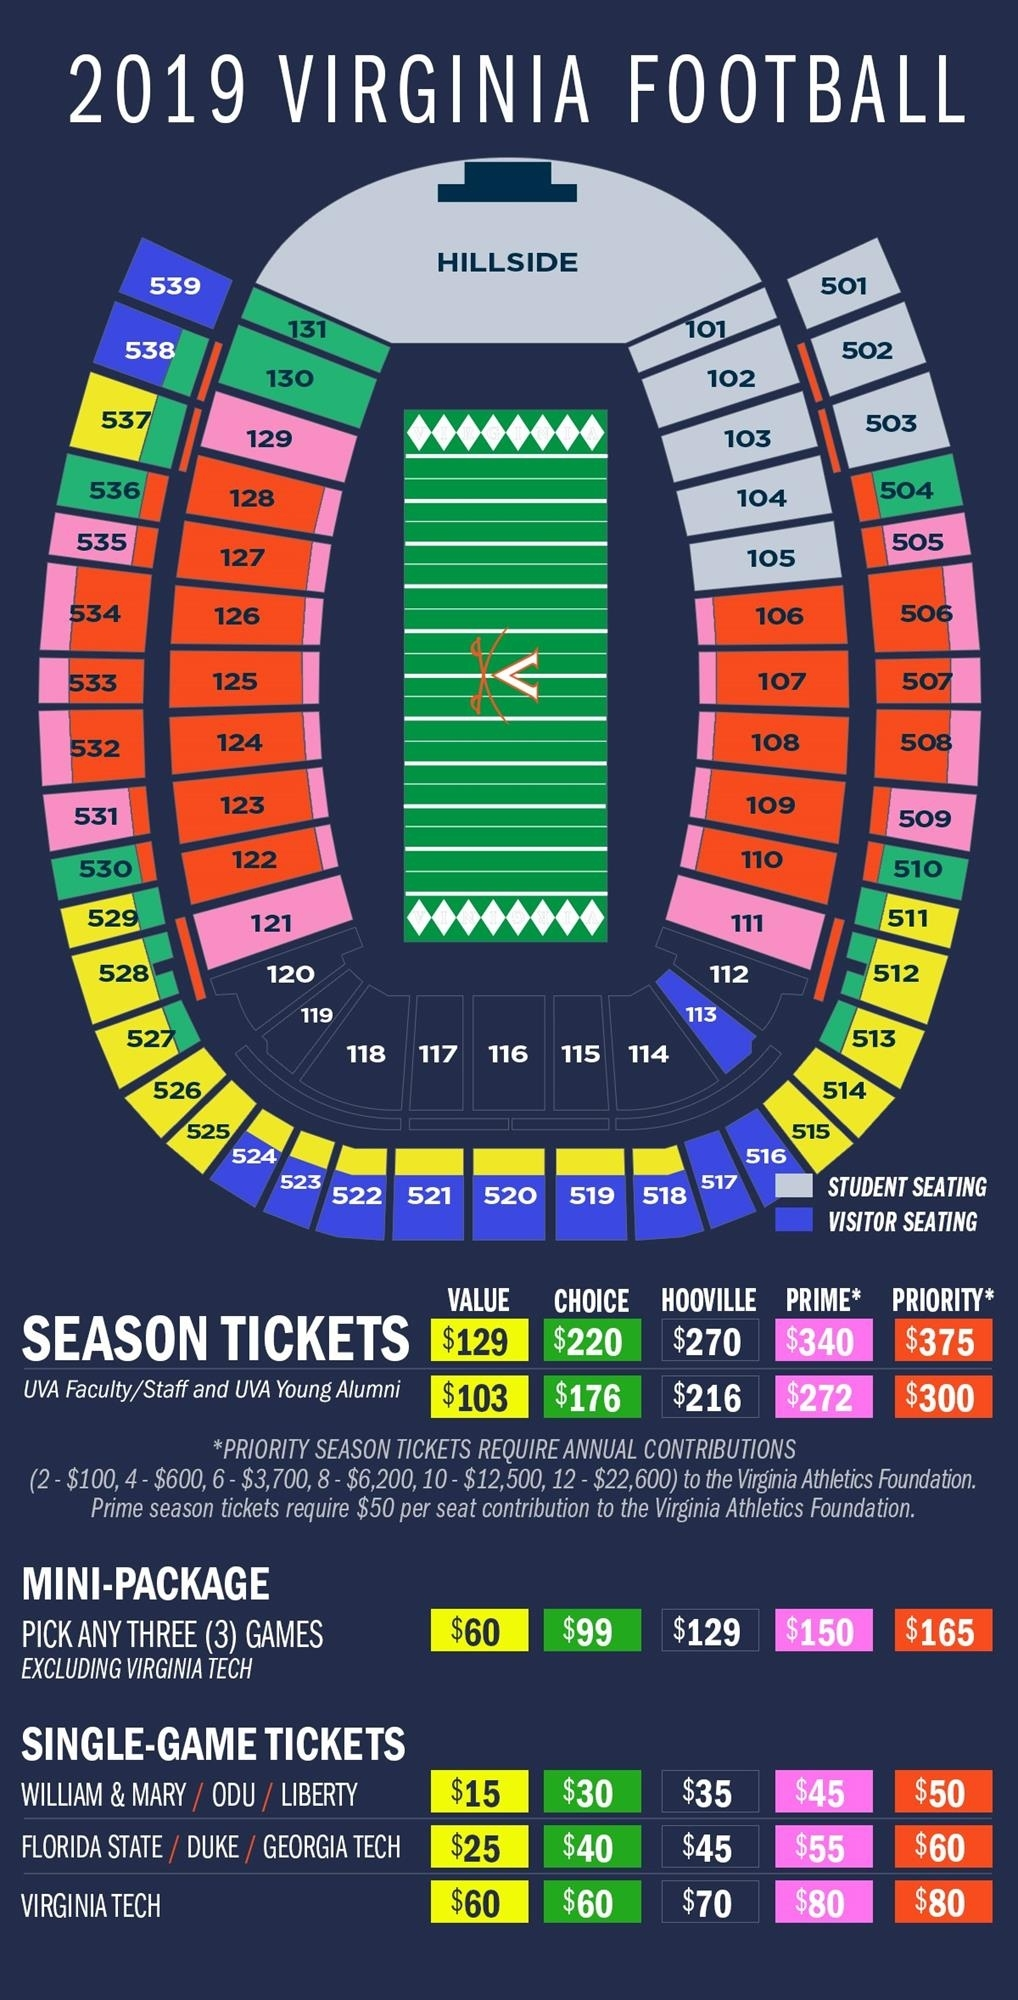 2019 Football Ticket Information - University Of Virginia pertaining to Super Bowl Seating Chart 2019